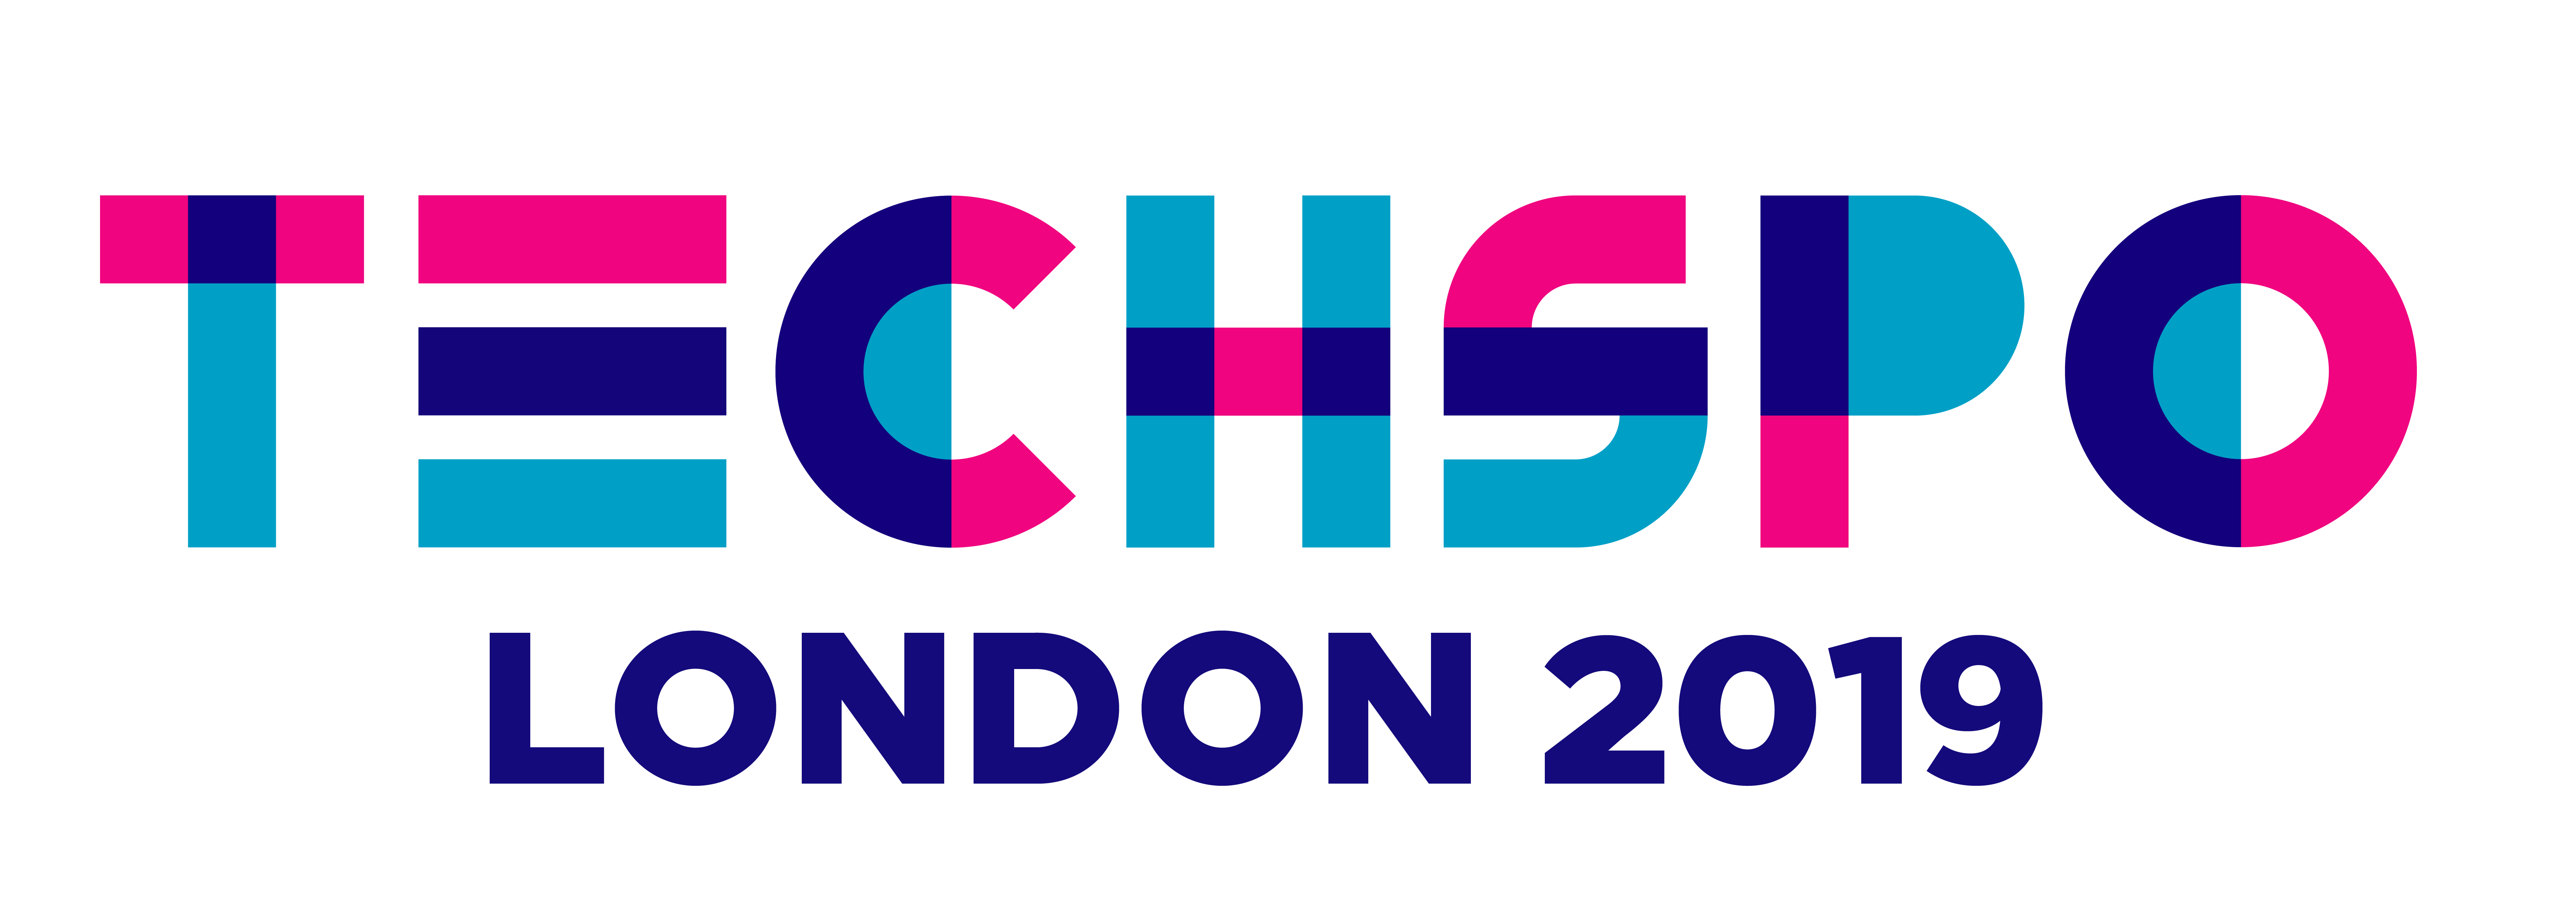 TECHSPO London 2022